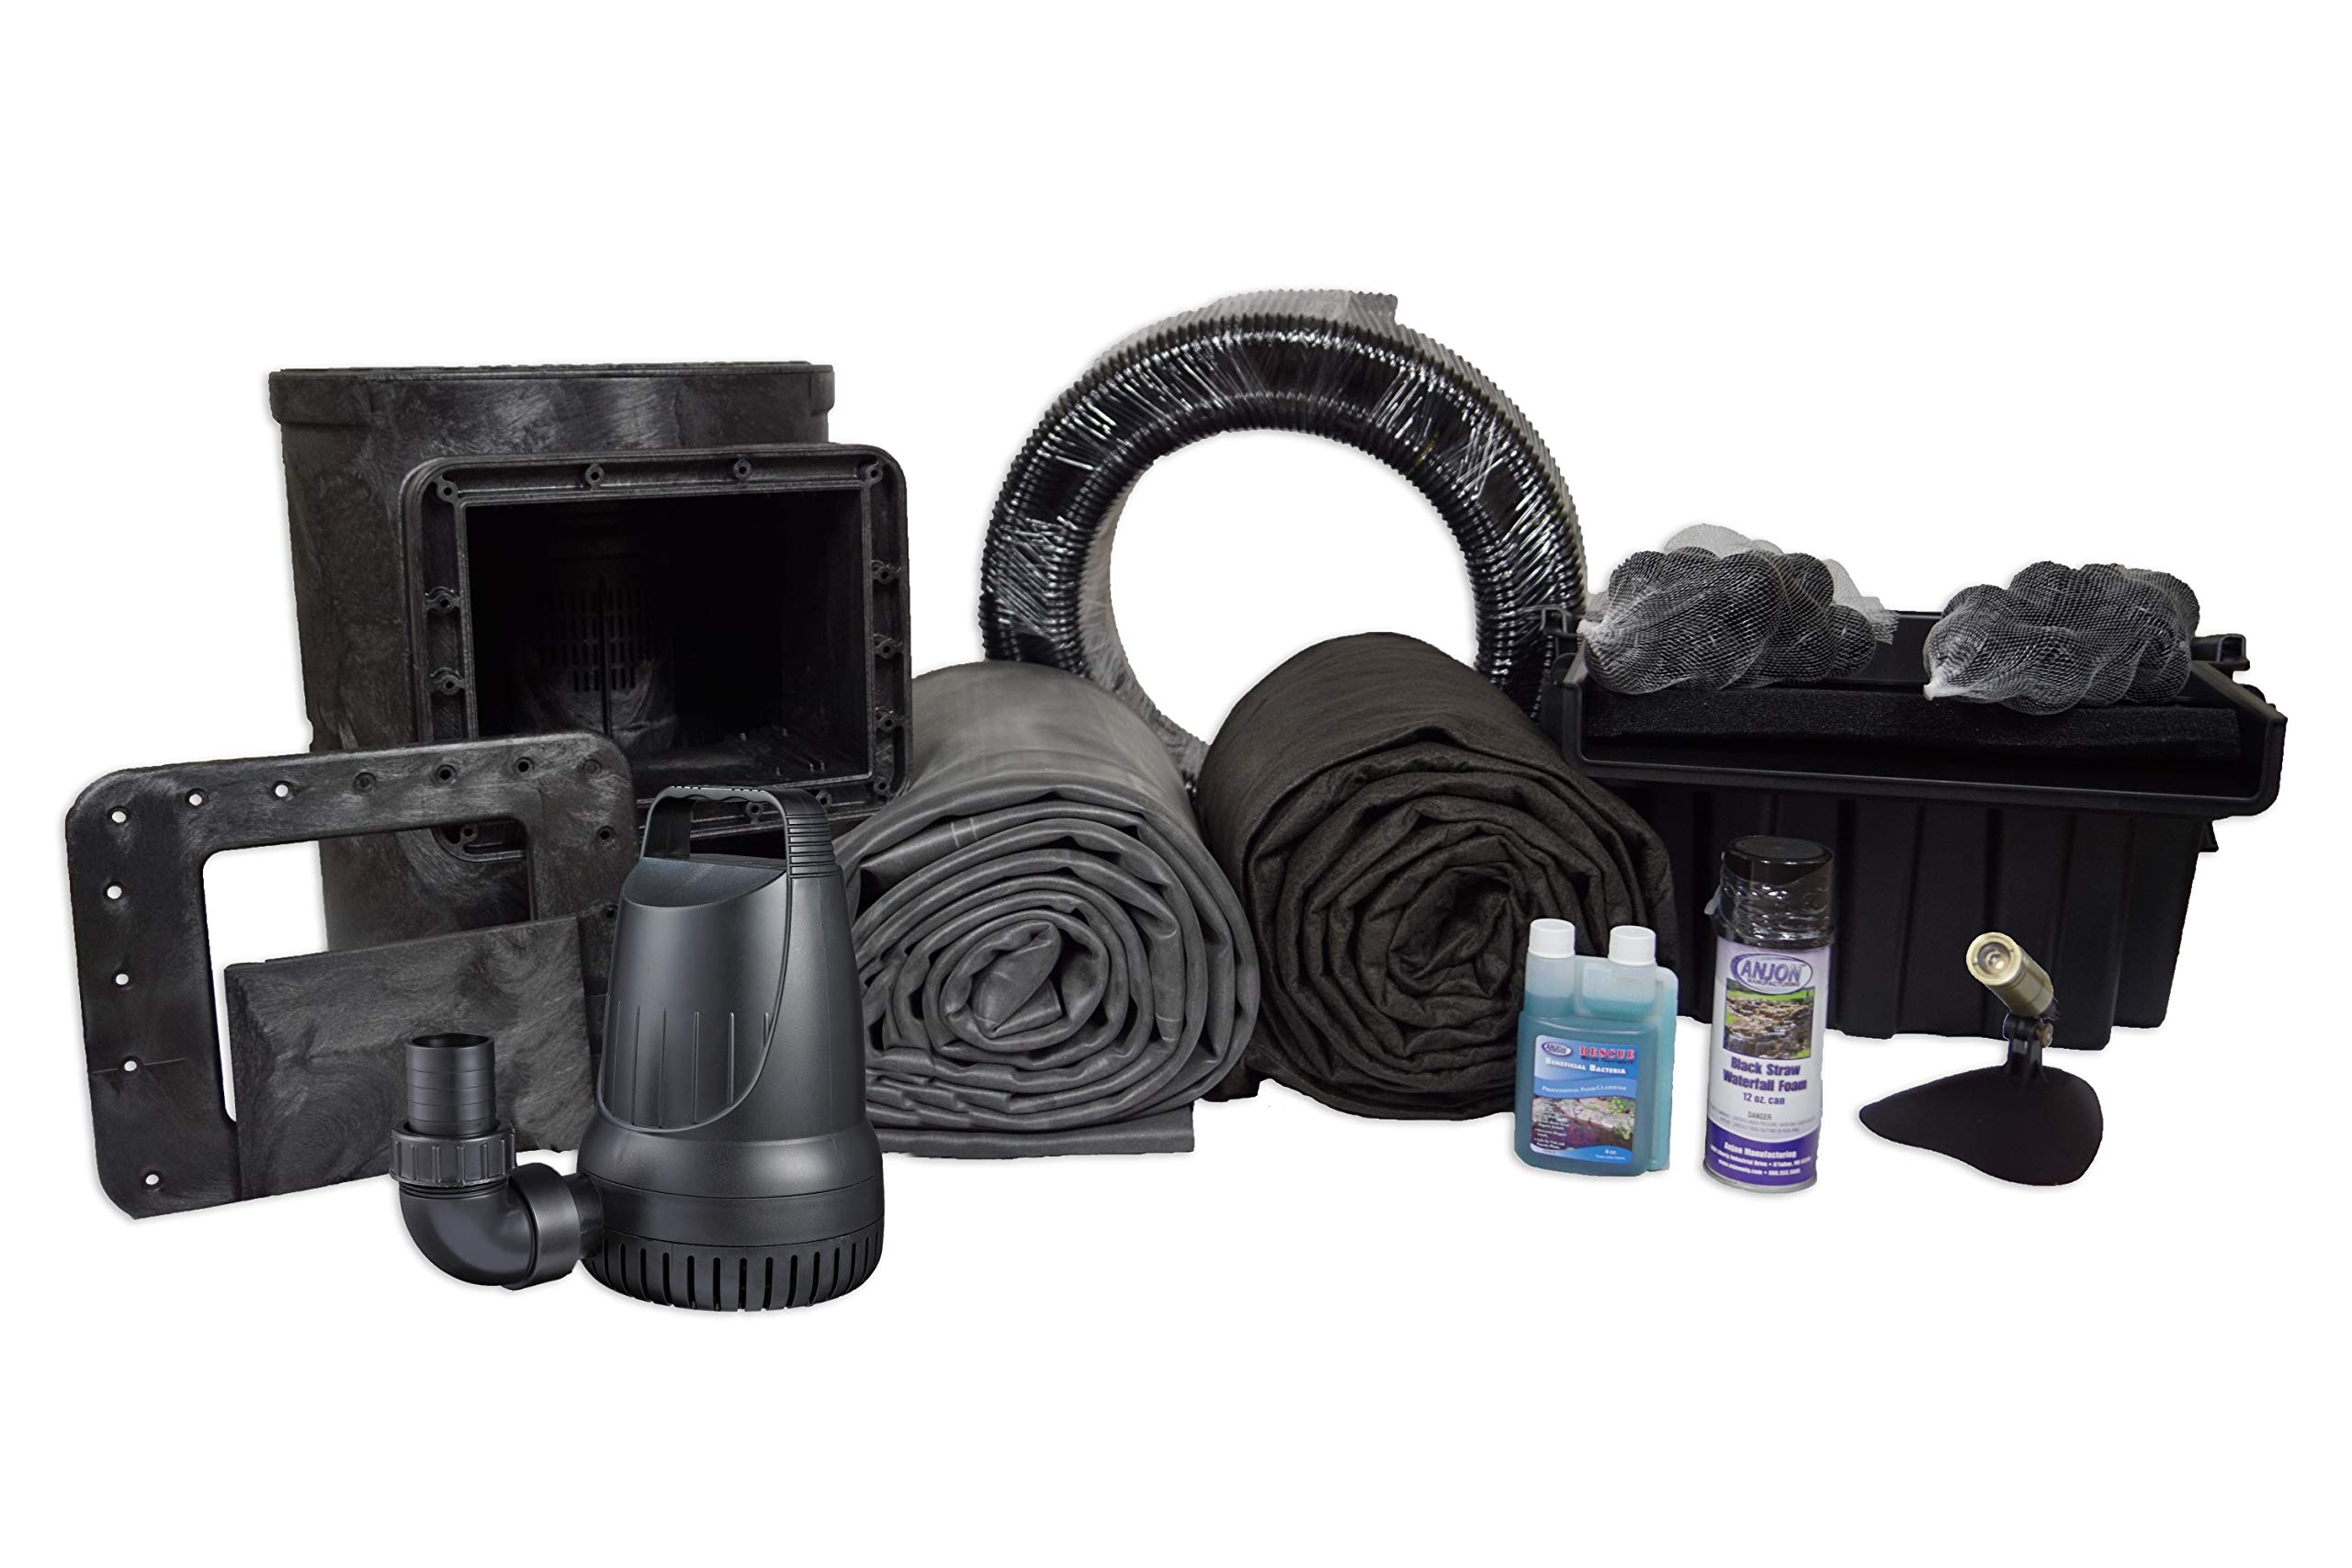 Half Off Ponds MDH6 - Medium Hybrid EPDM Pond Kit w/ 15' x 20' Lifeguard Pond Liner, 3,300 GPH Pump, 16'' Filtering Waterfall, and Savio Compact Skimmerfilter